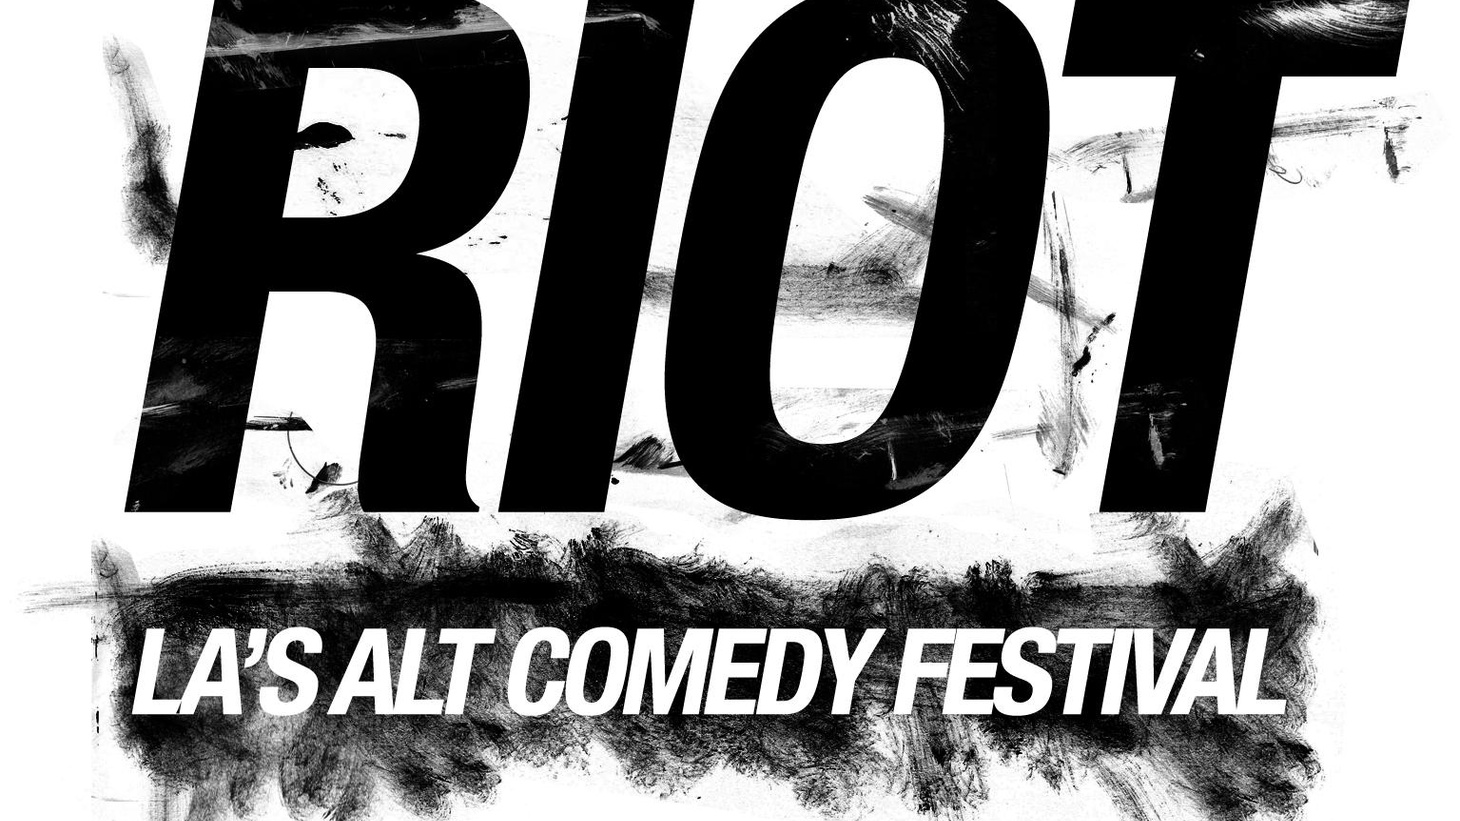 A recording from KCRW's showcase at Riot, LA's newest comedy festival.